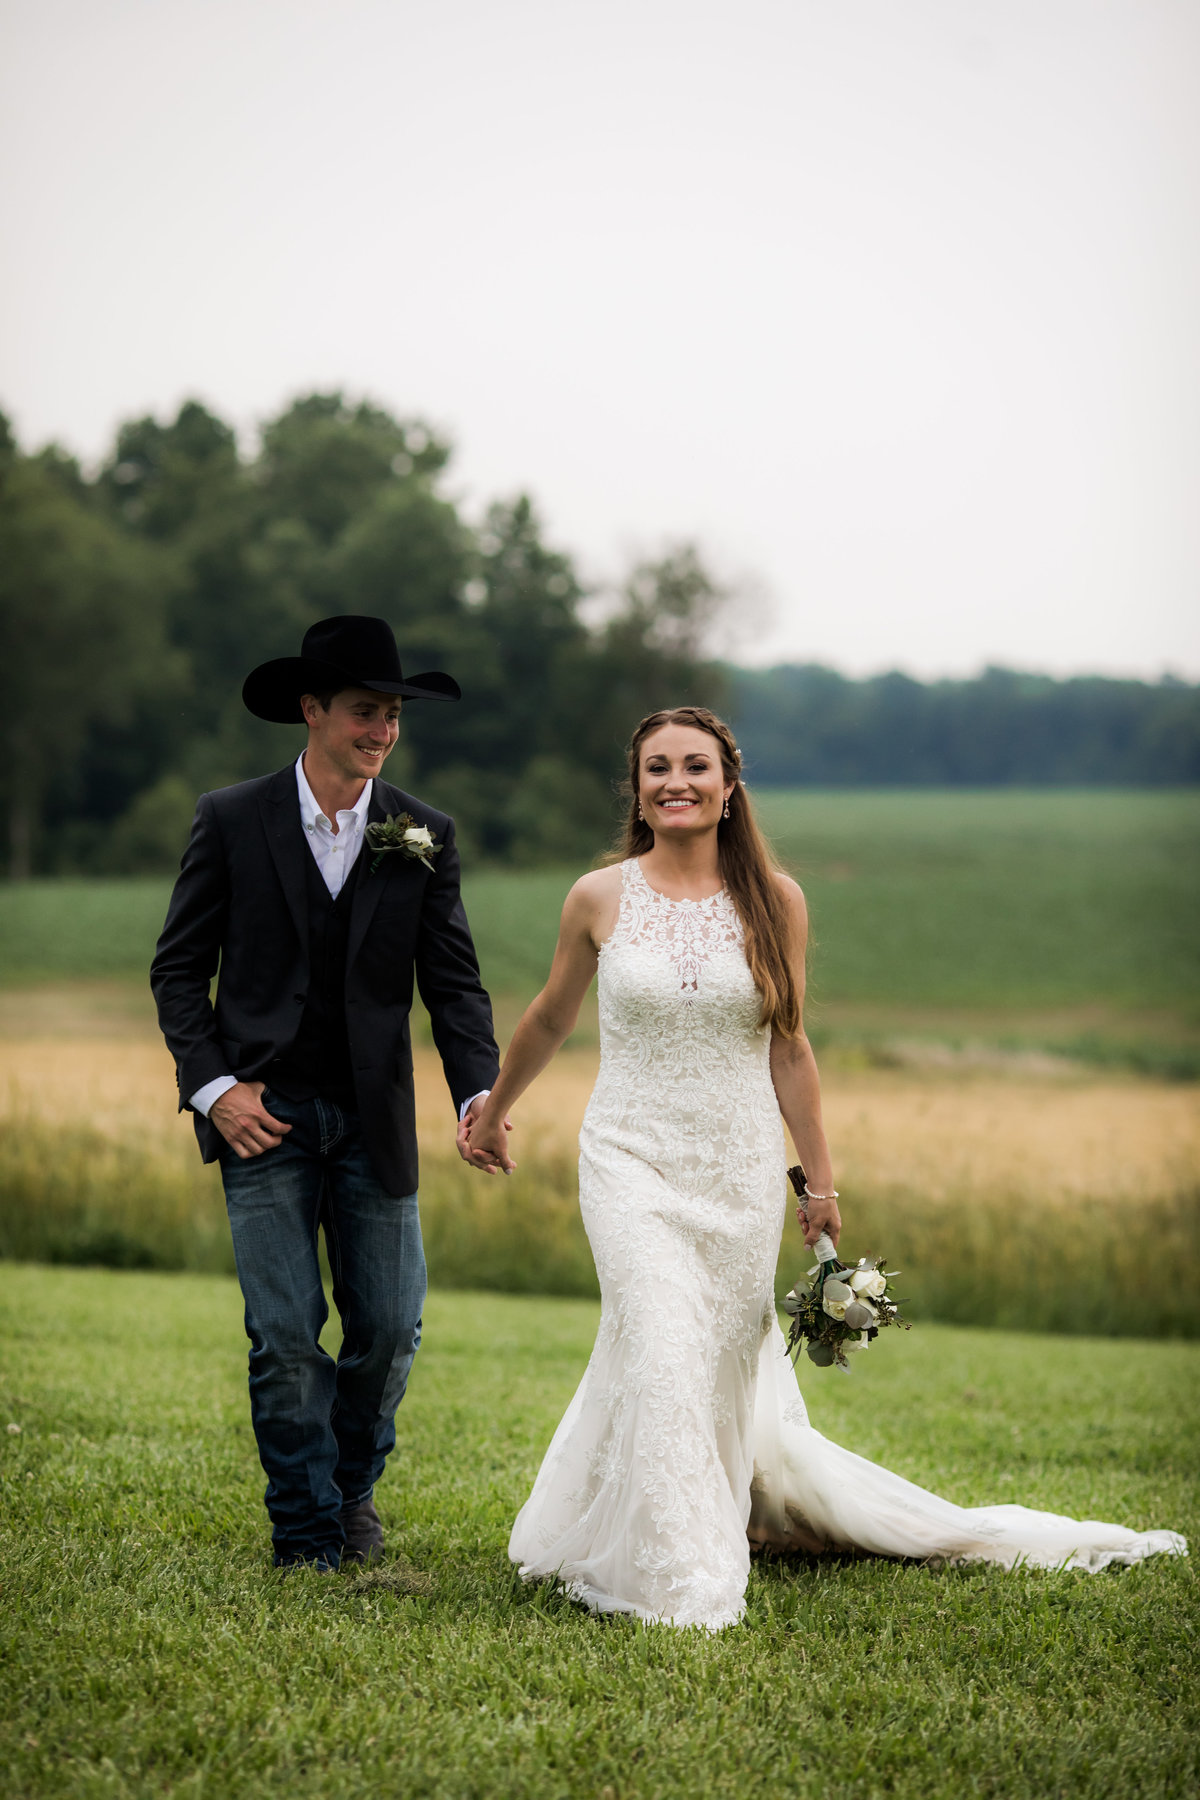 Nsshville Bride - Nashville Brides - The Hayloft Weddings - Tennessee Brides - Kentucky Brides - Southern Brides - Cowboys Wife - Cowboys Bride - Ranch Weddings - Cowboys and Belles068